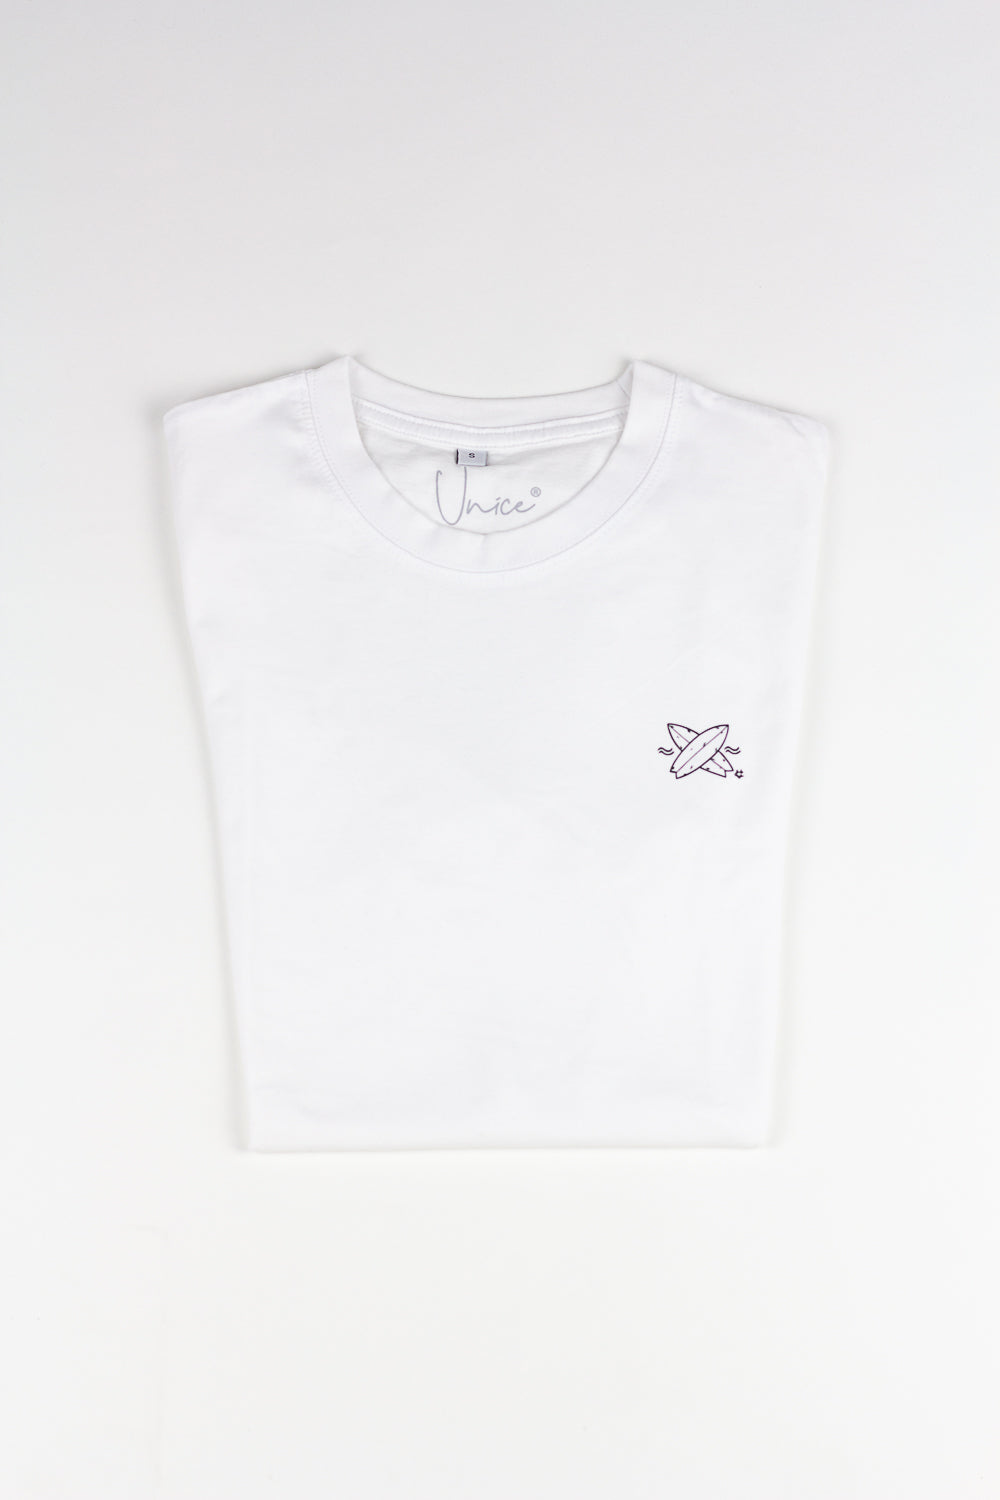 2. Unice T-shirt Surfboards WHITE